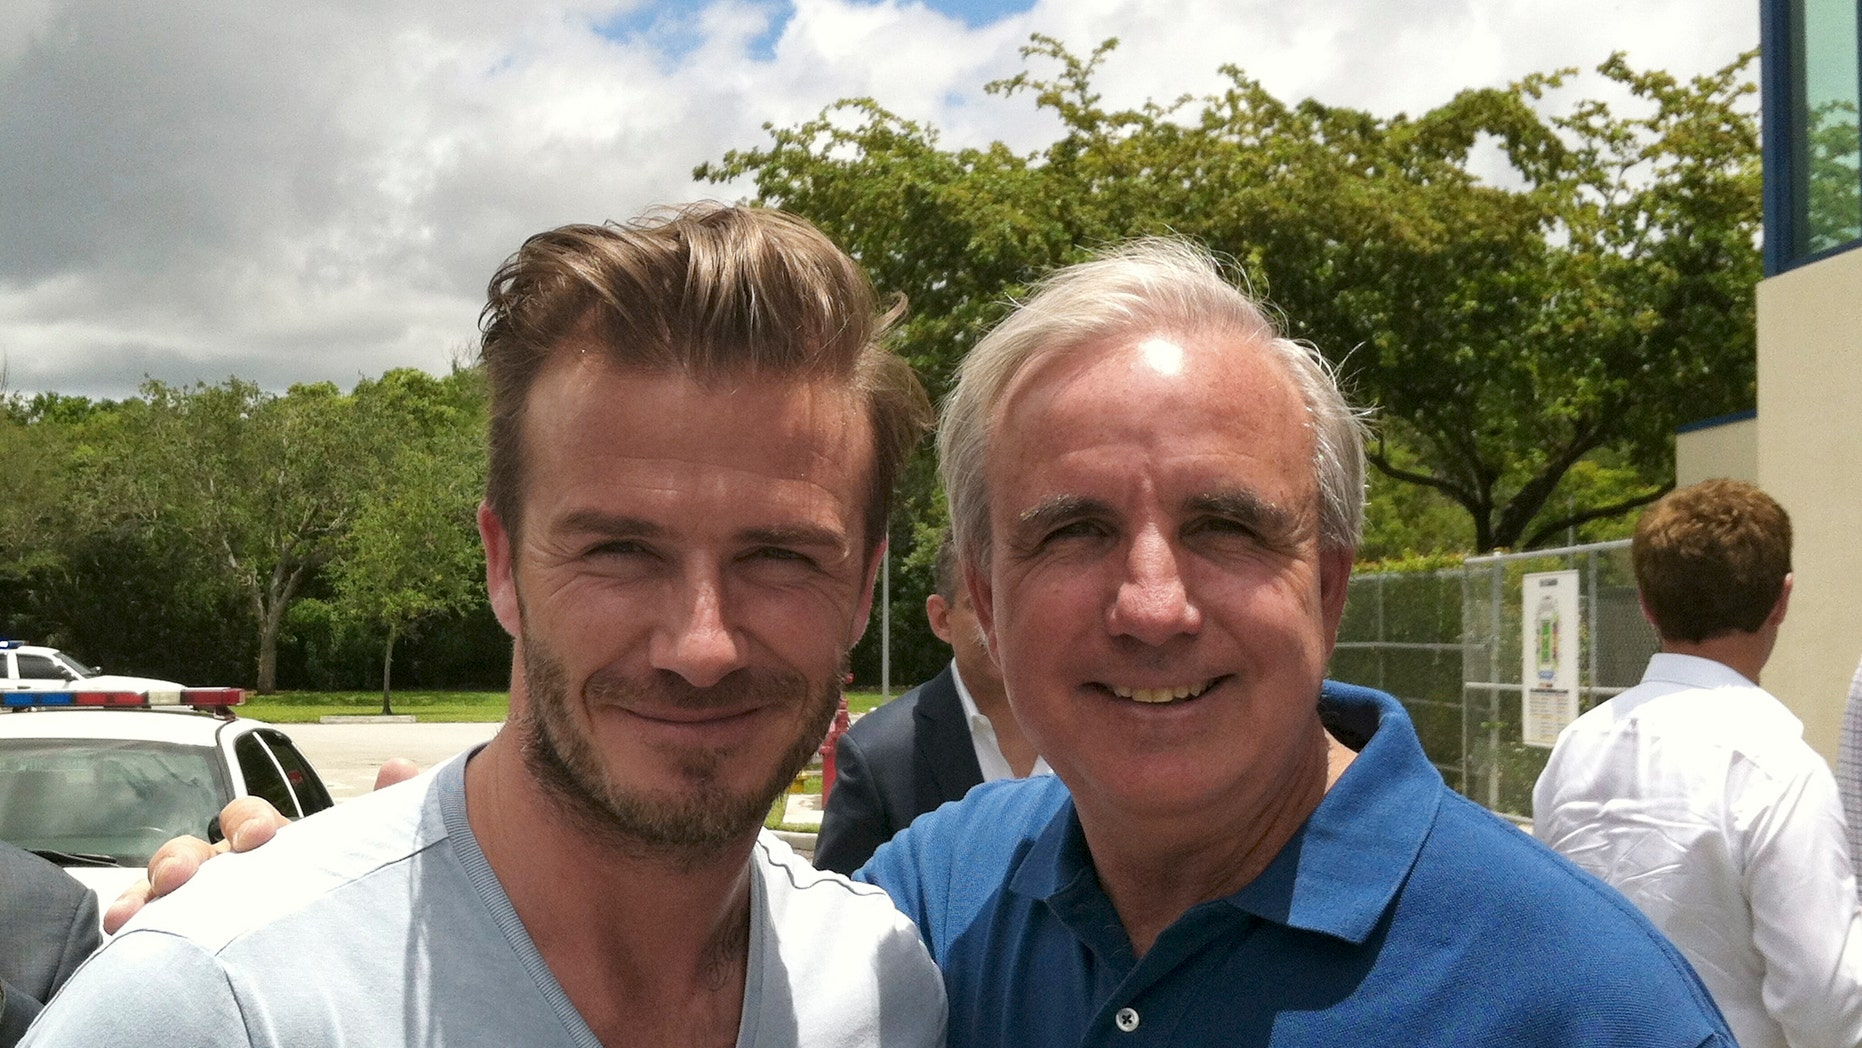 In this undated photo released by Miami-Dade County, former soccer star David Beckham poses for a photo with Miami-Dade County Mayor Carlos Gimenez, in Miami. Beckham may be setting his sights on a new sports venture: A professional soccer team in Miami. The newly retired Beckham toured Sun Life and Florida International University stadiums and met with Miami-Dade County Mayor Carlos Gimenez on Saturday. (AP Photo/Miami-Dade County)